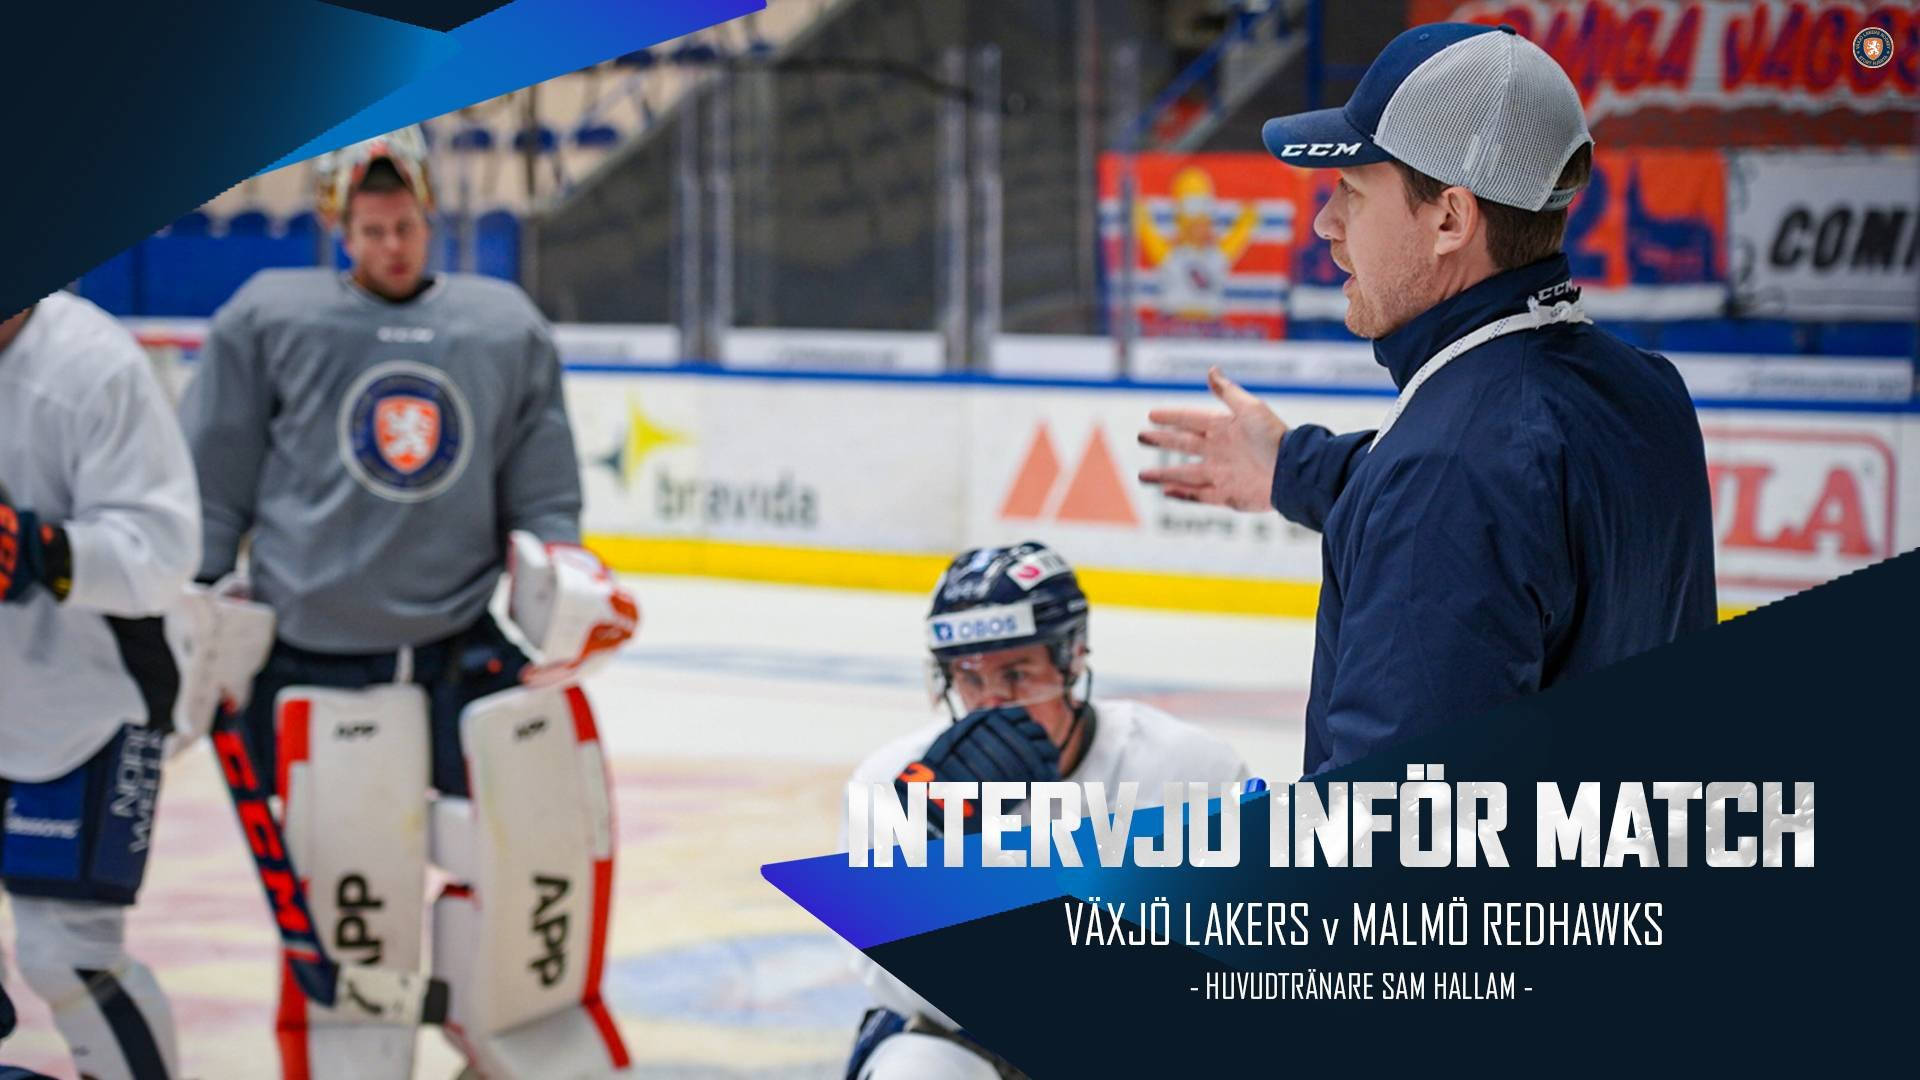 Coachintervju med Sam Hallam